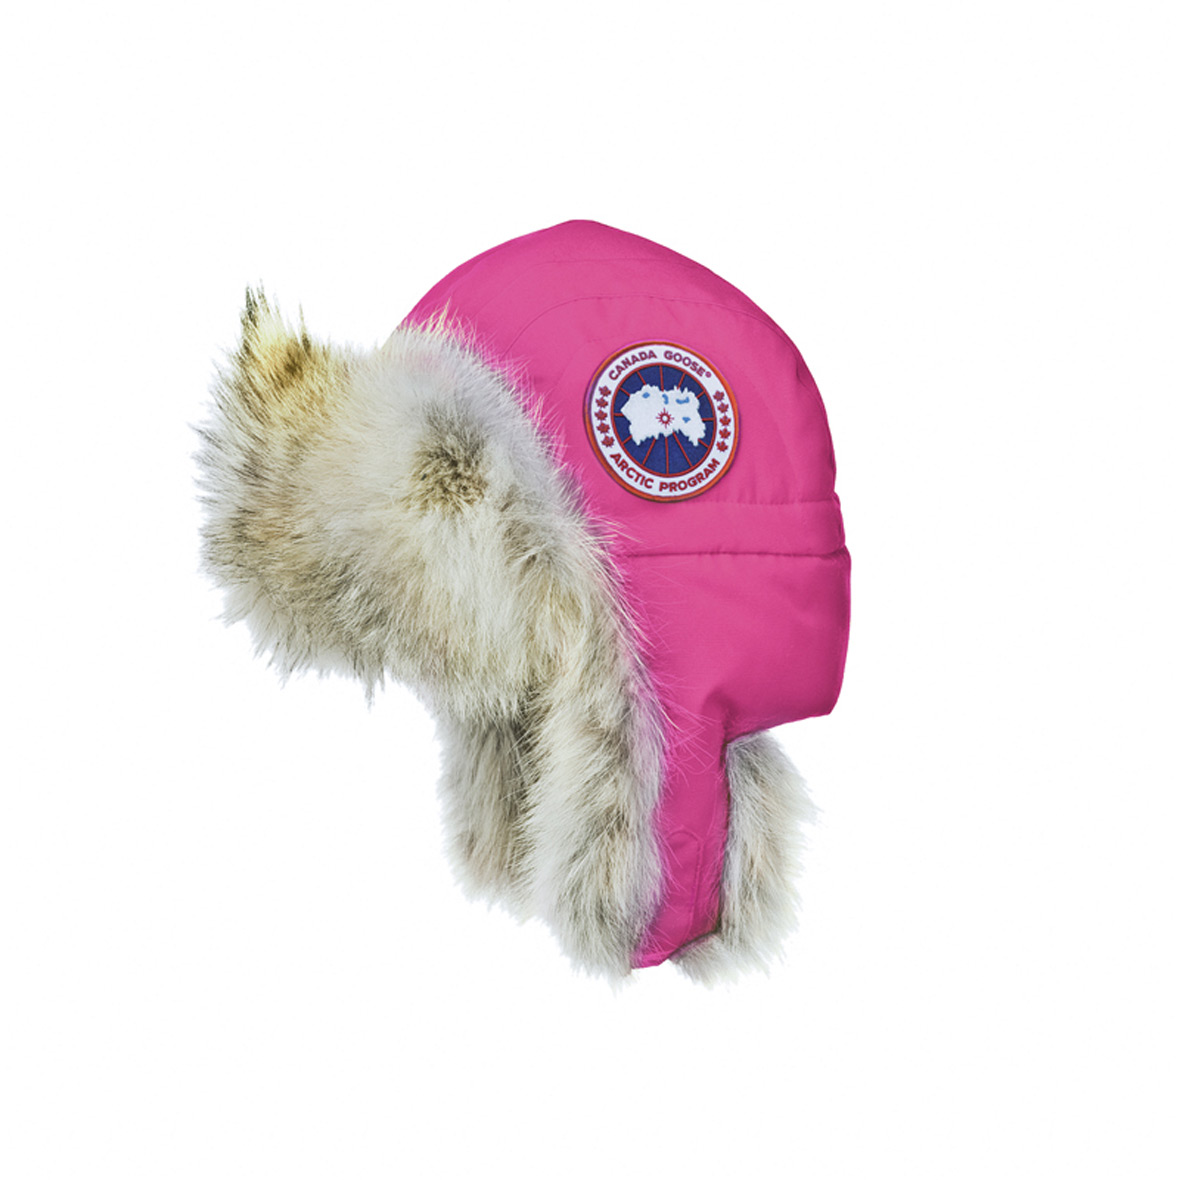 Canada Goose Unisex Aviator Hat SUMMIT PINK For Men